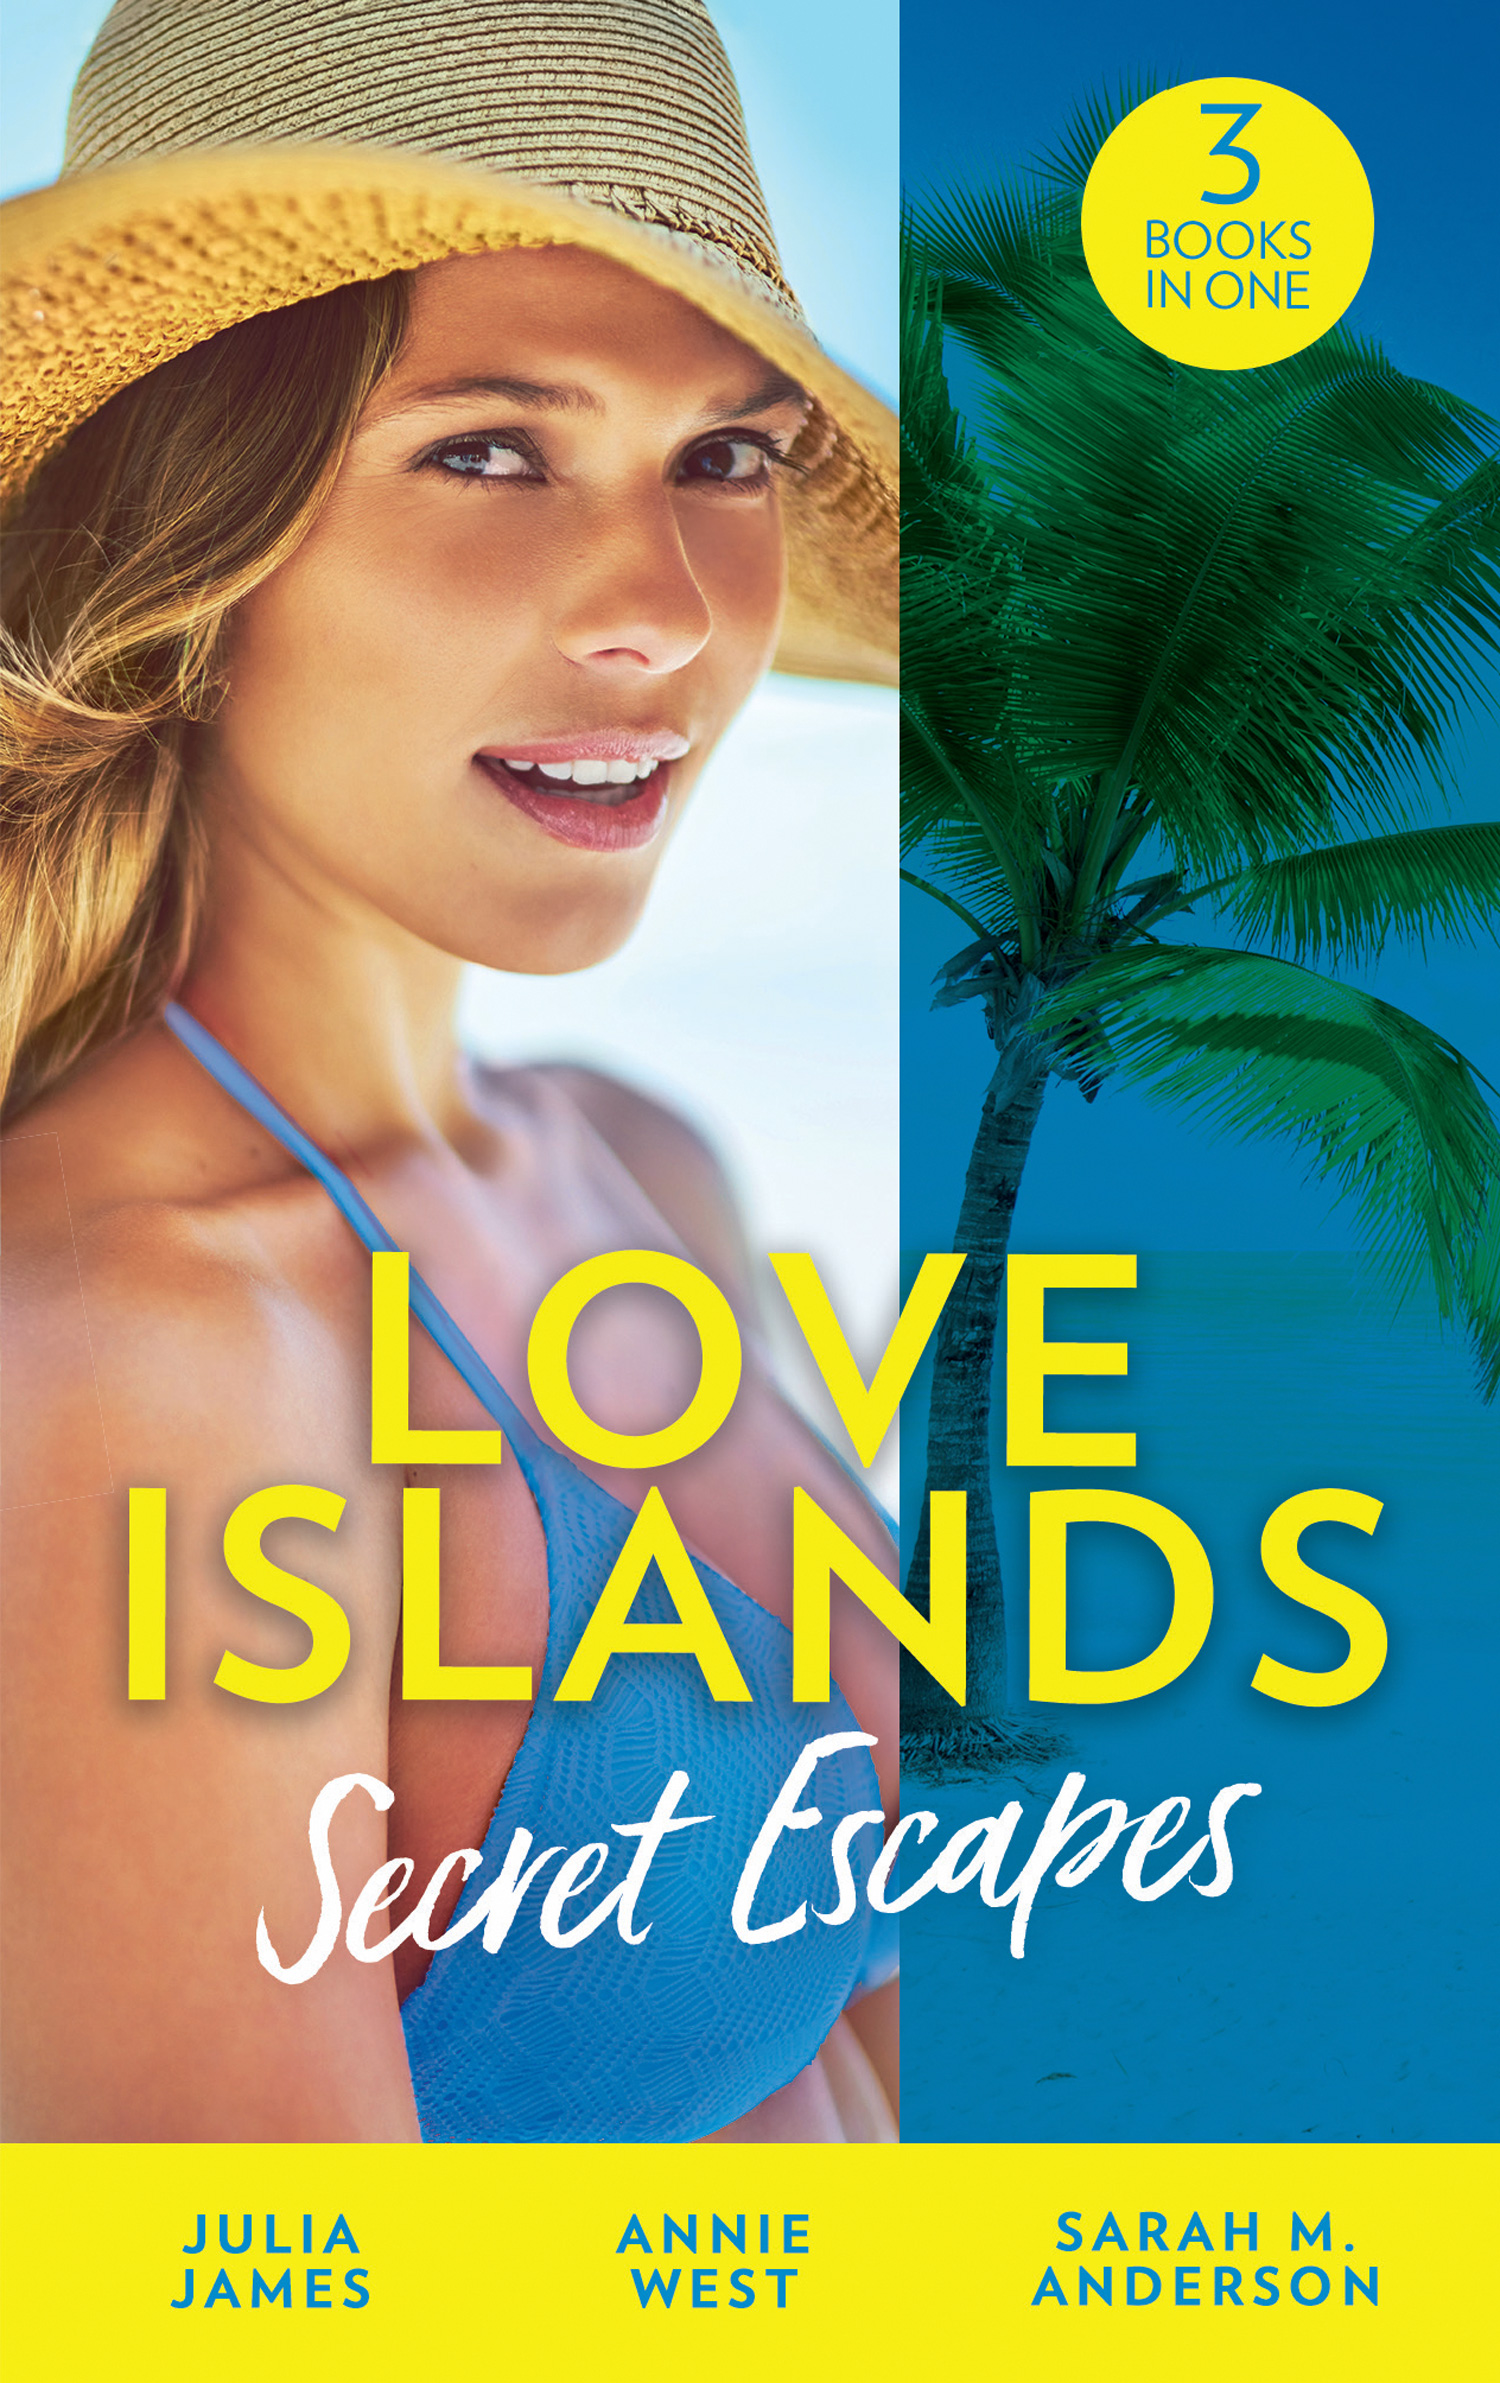 Love Islands: Secret Escapes